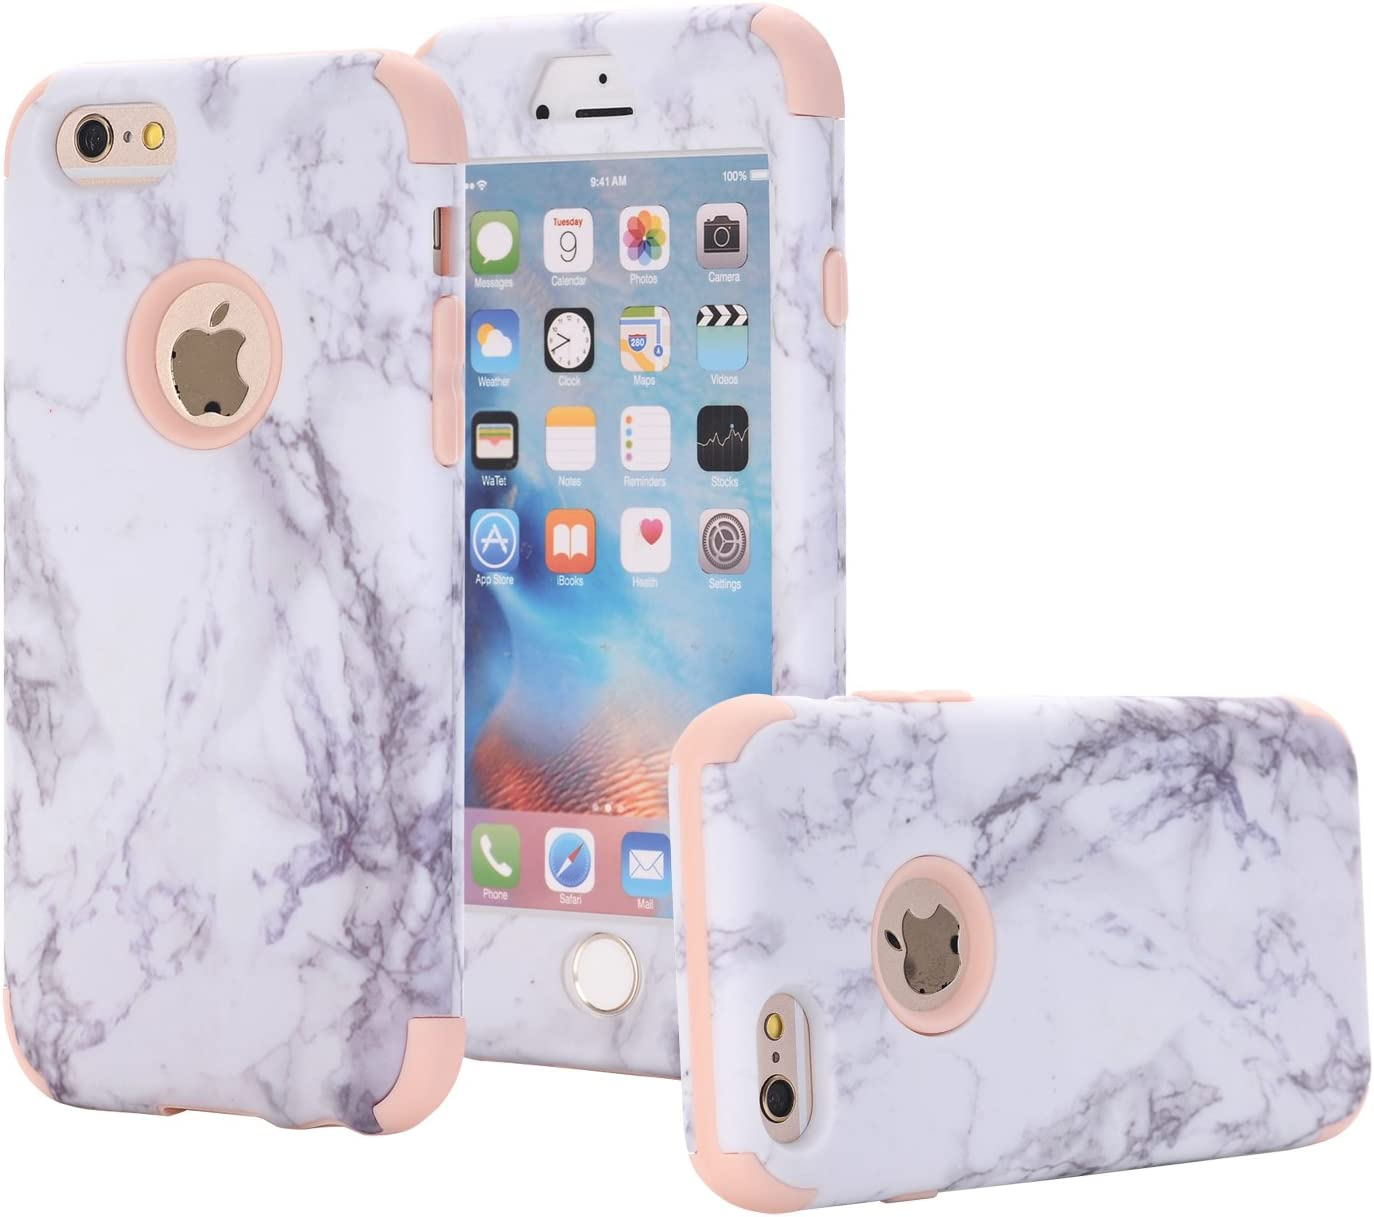 """iPhone 6 Case, iPhone 6s Case, KMISS Shockproof Marble Pattern [Drop Protection] Hybrid Heavy Duty Three Layer Full-Body Protective Armor Defender Case for iPhone 6/6S 4.7"""" (Rose Gold)"""